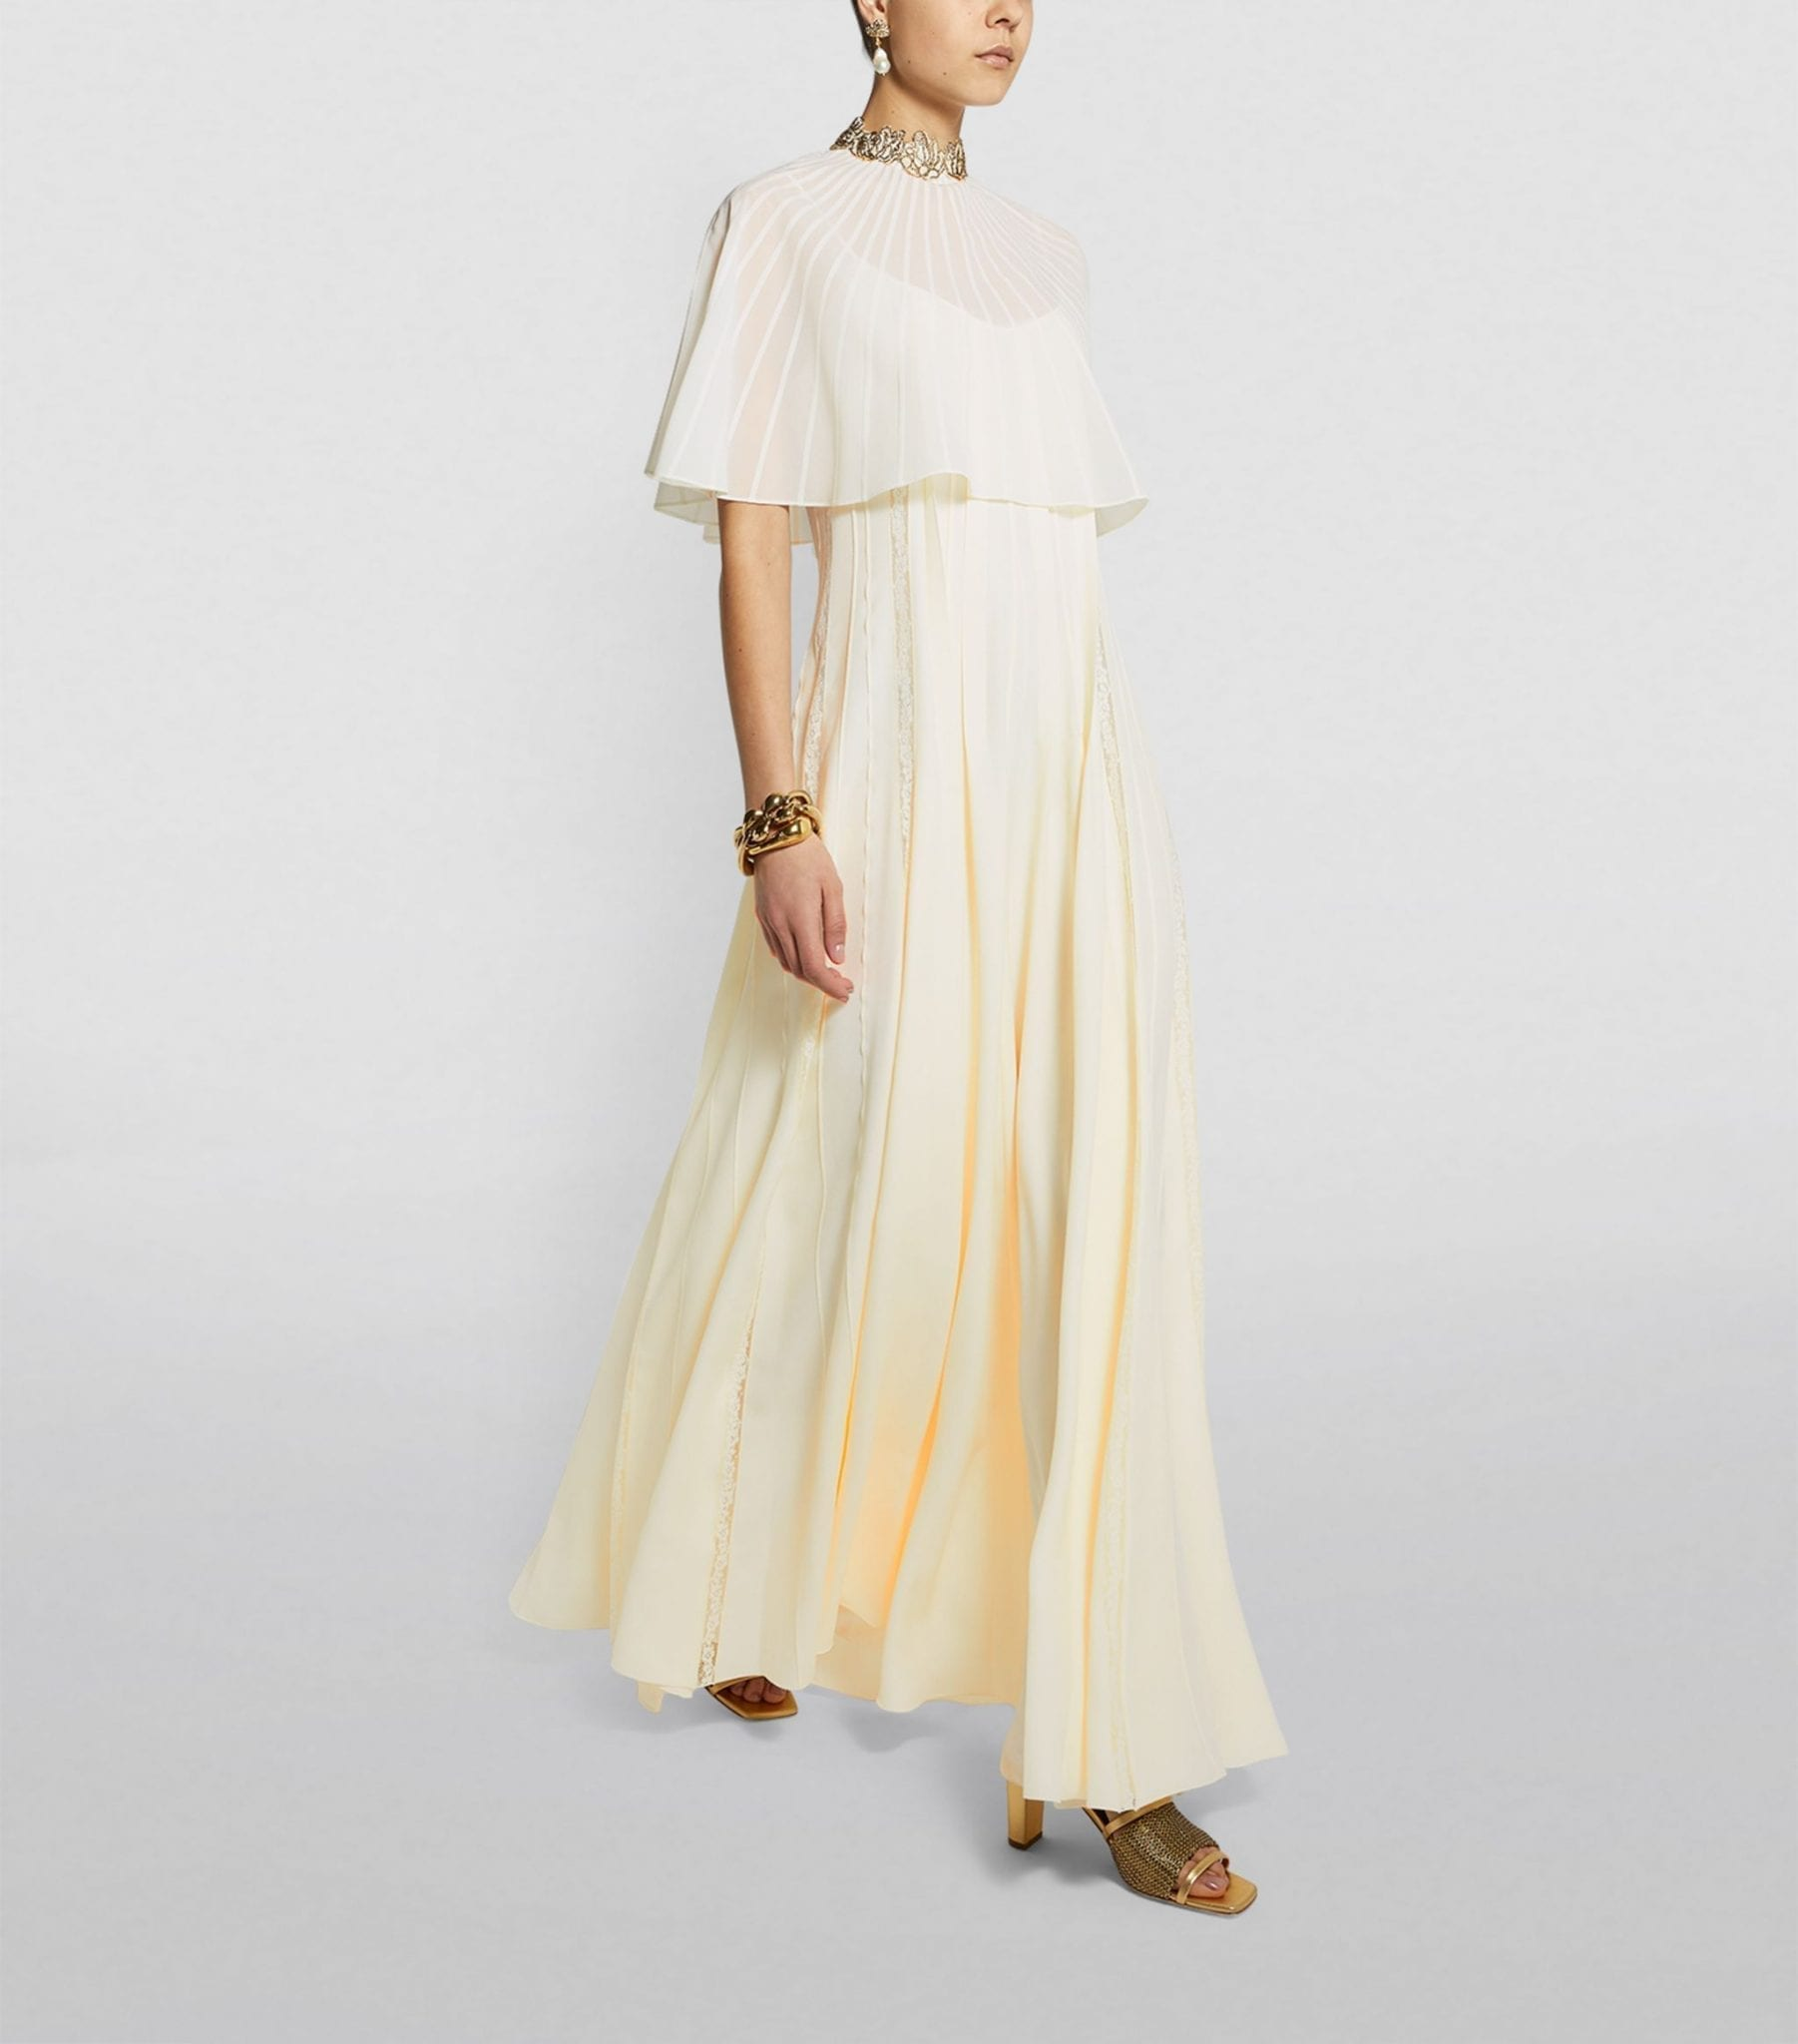 CHLOÉ Cape-Top Silk Crepe de Chine Gown